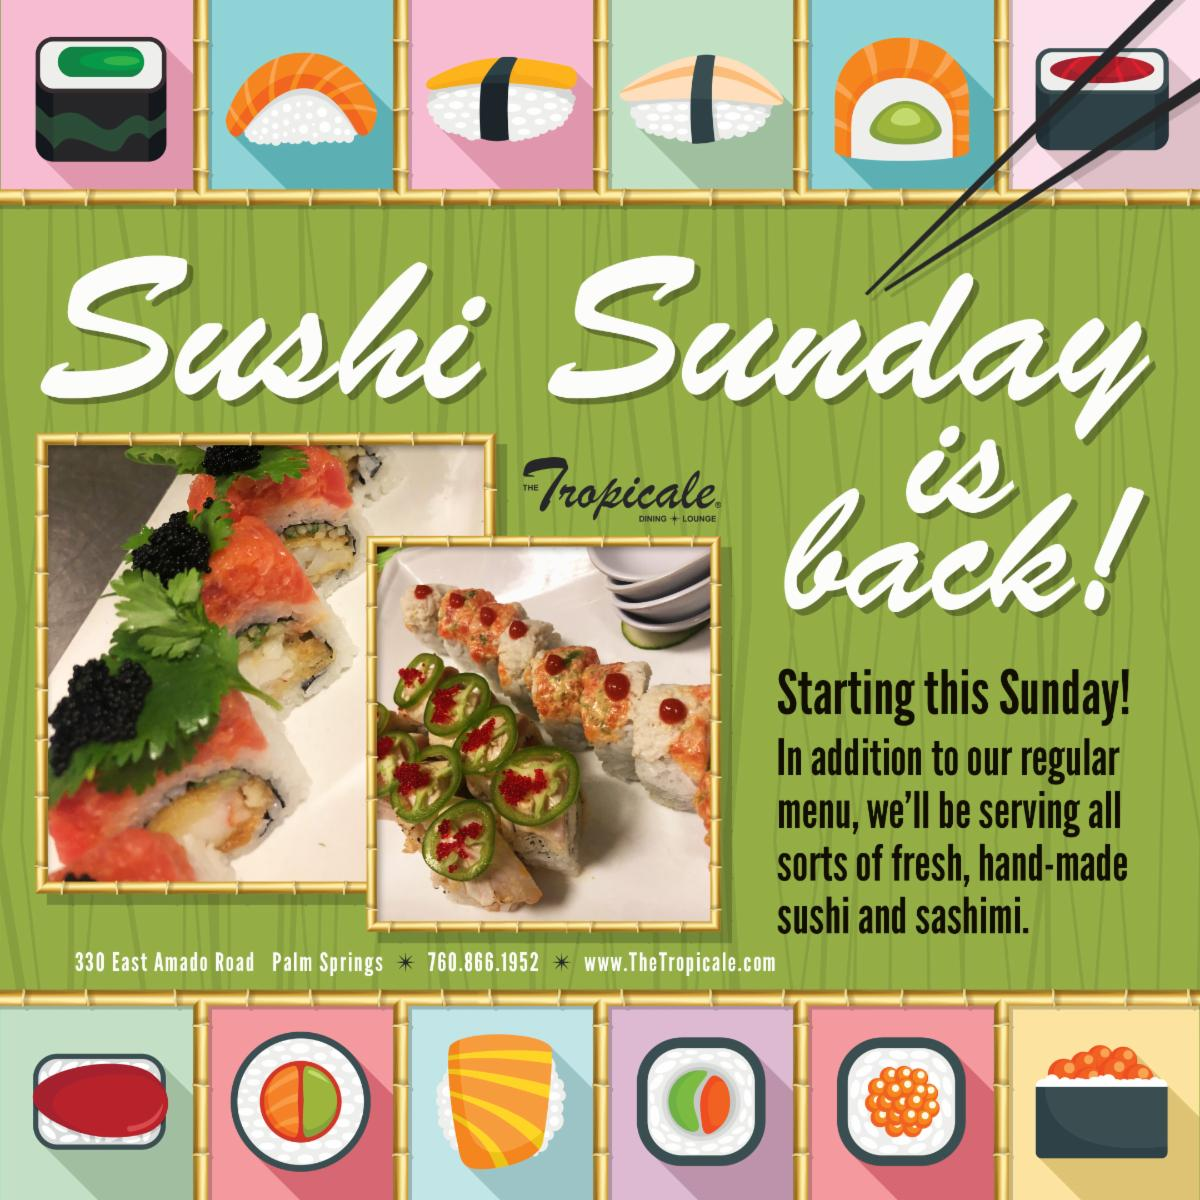 Sushi Sunday is Back at The Tropicale Palm Springs